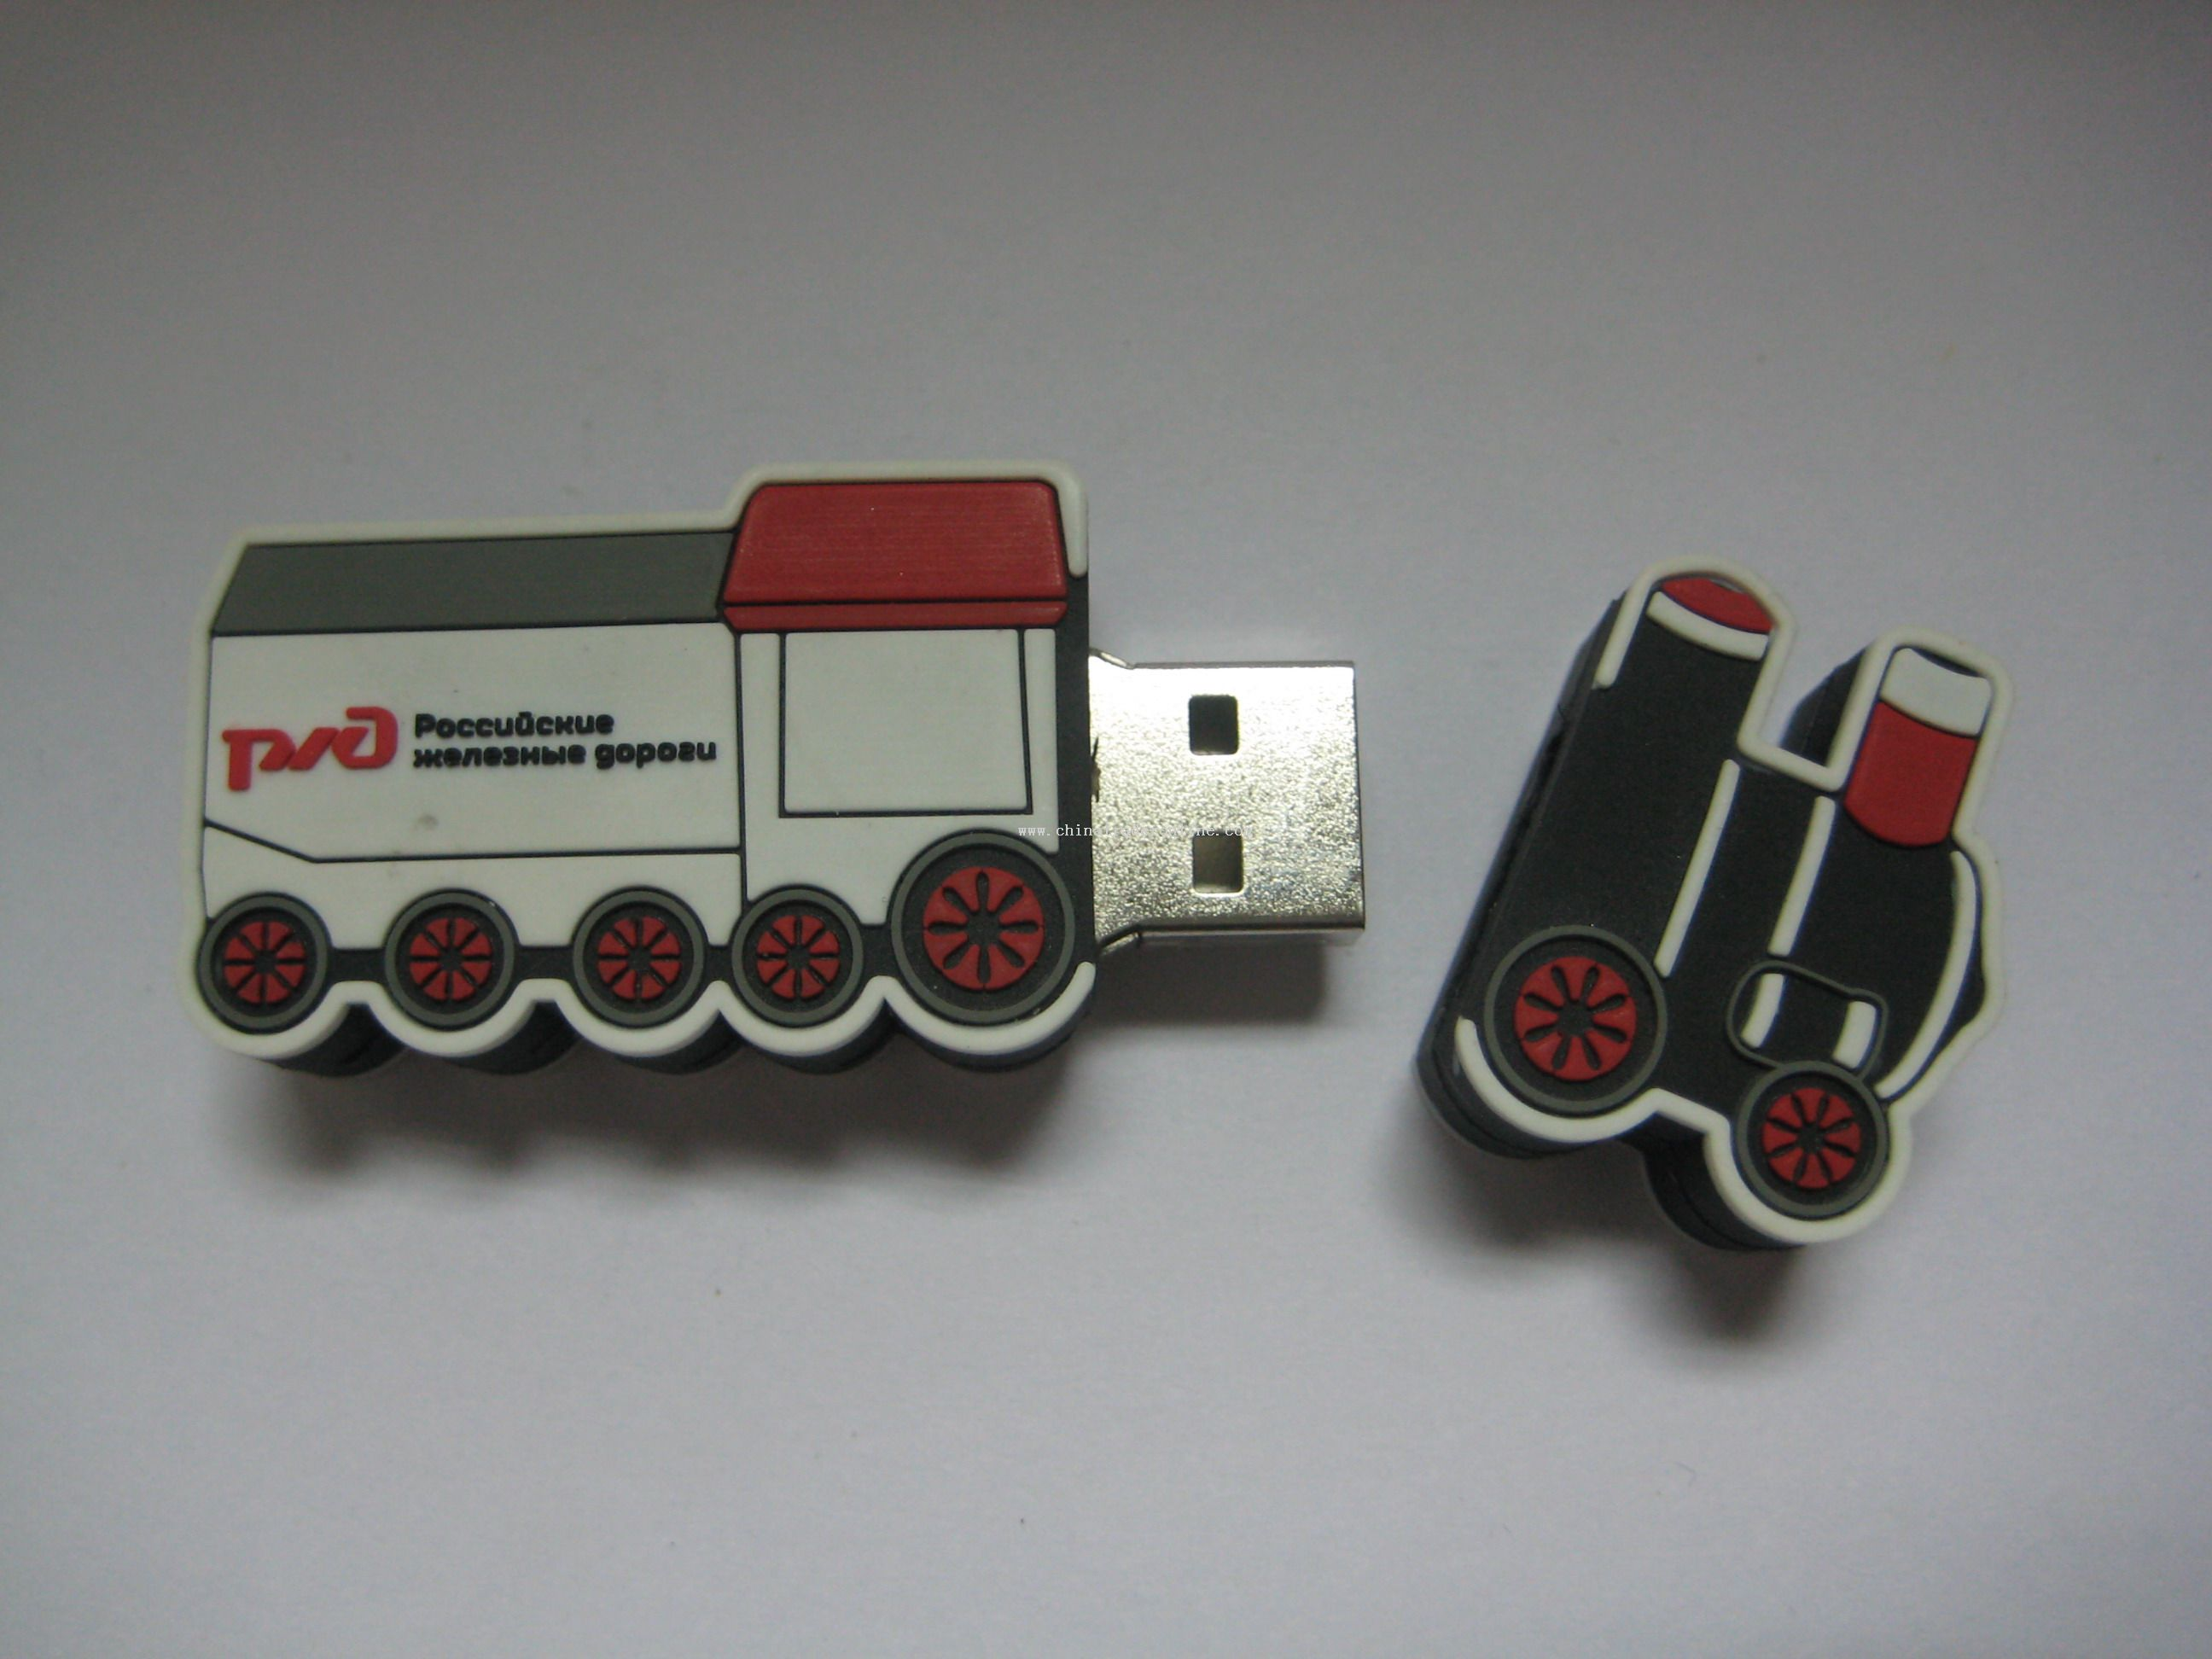 Train shape usb